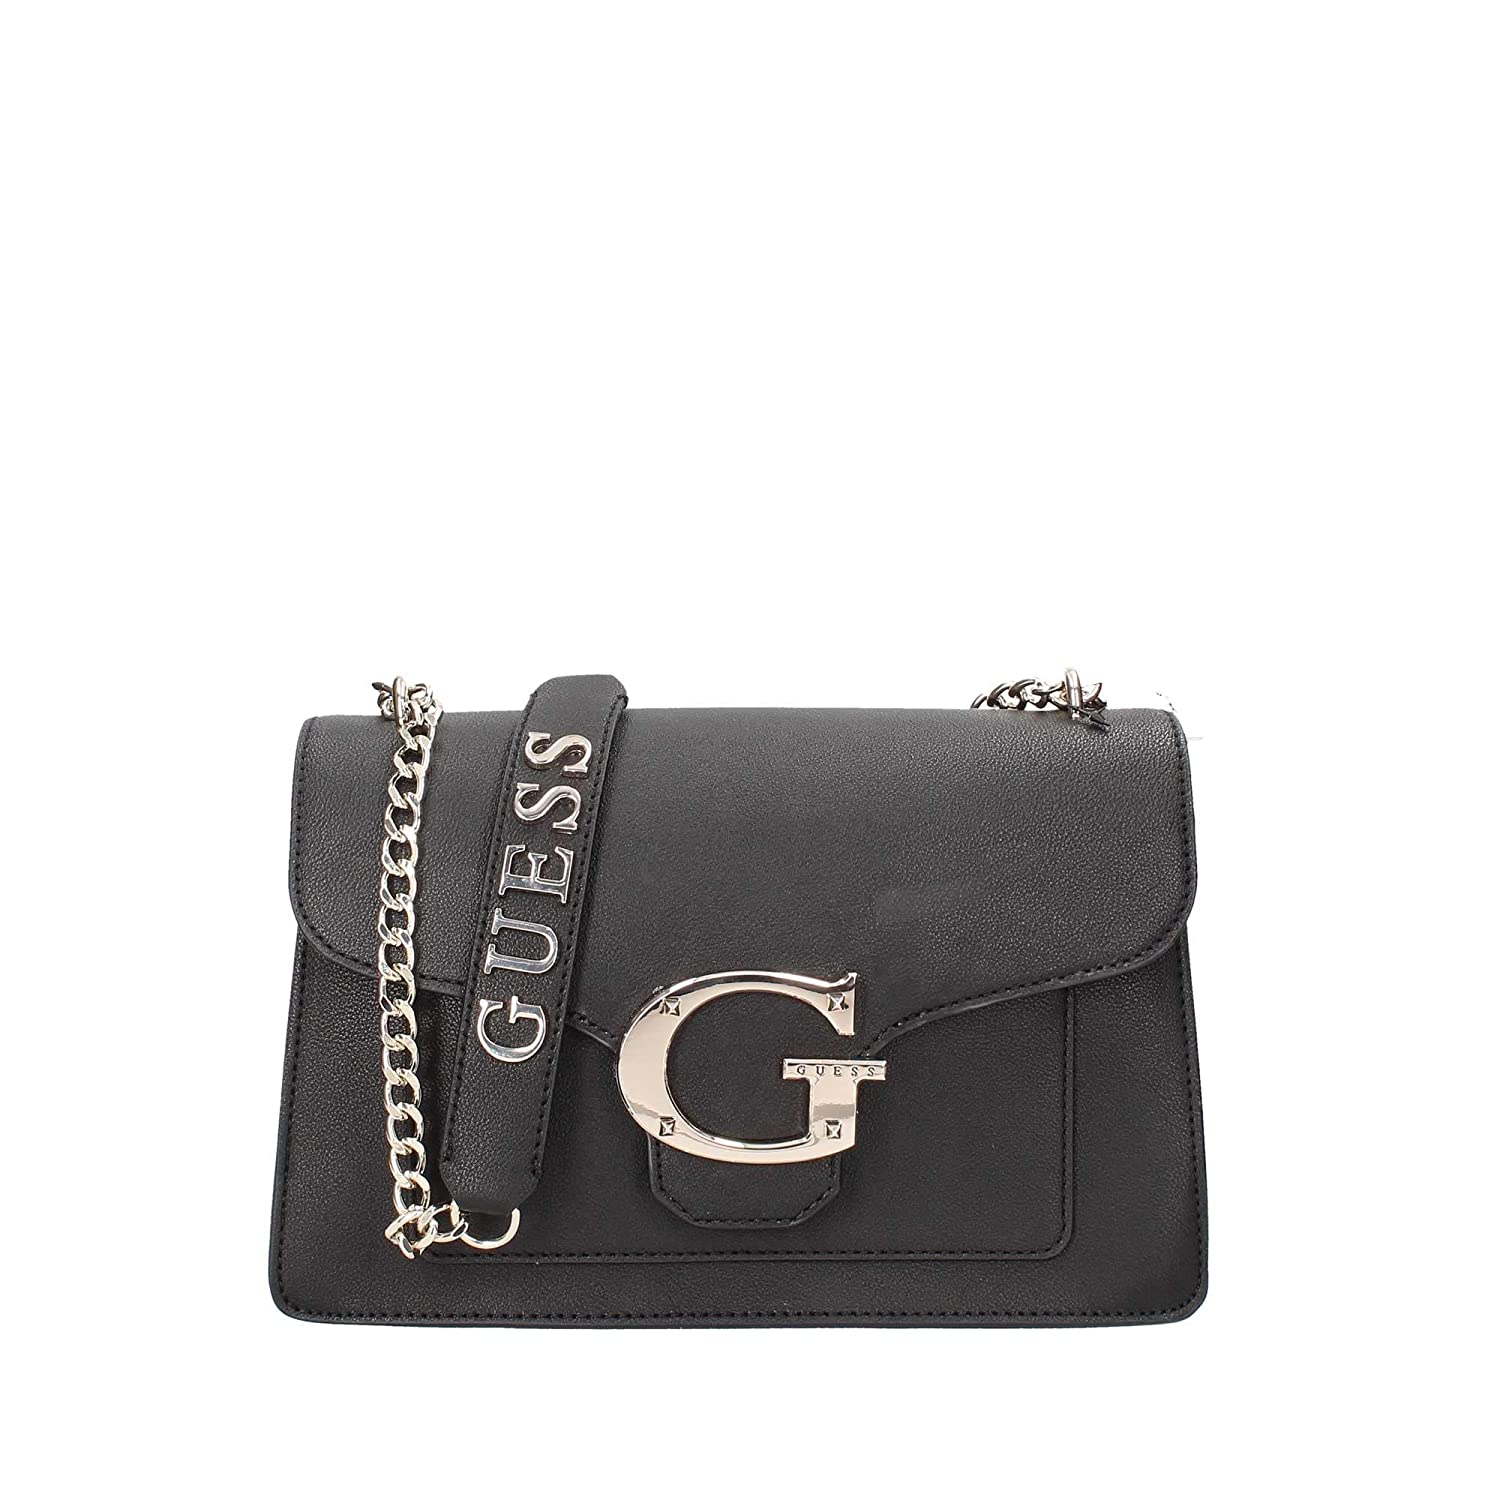 Guess CAMILA CONVERTIBLE XBODY FLAP